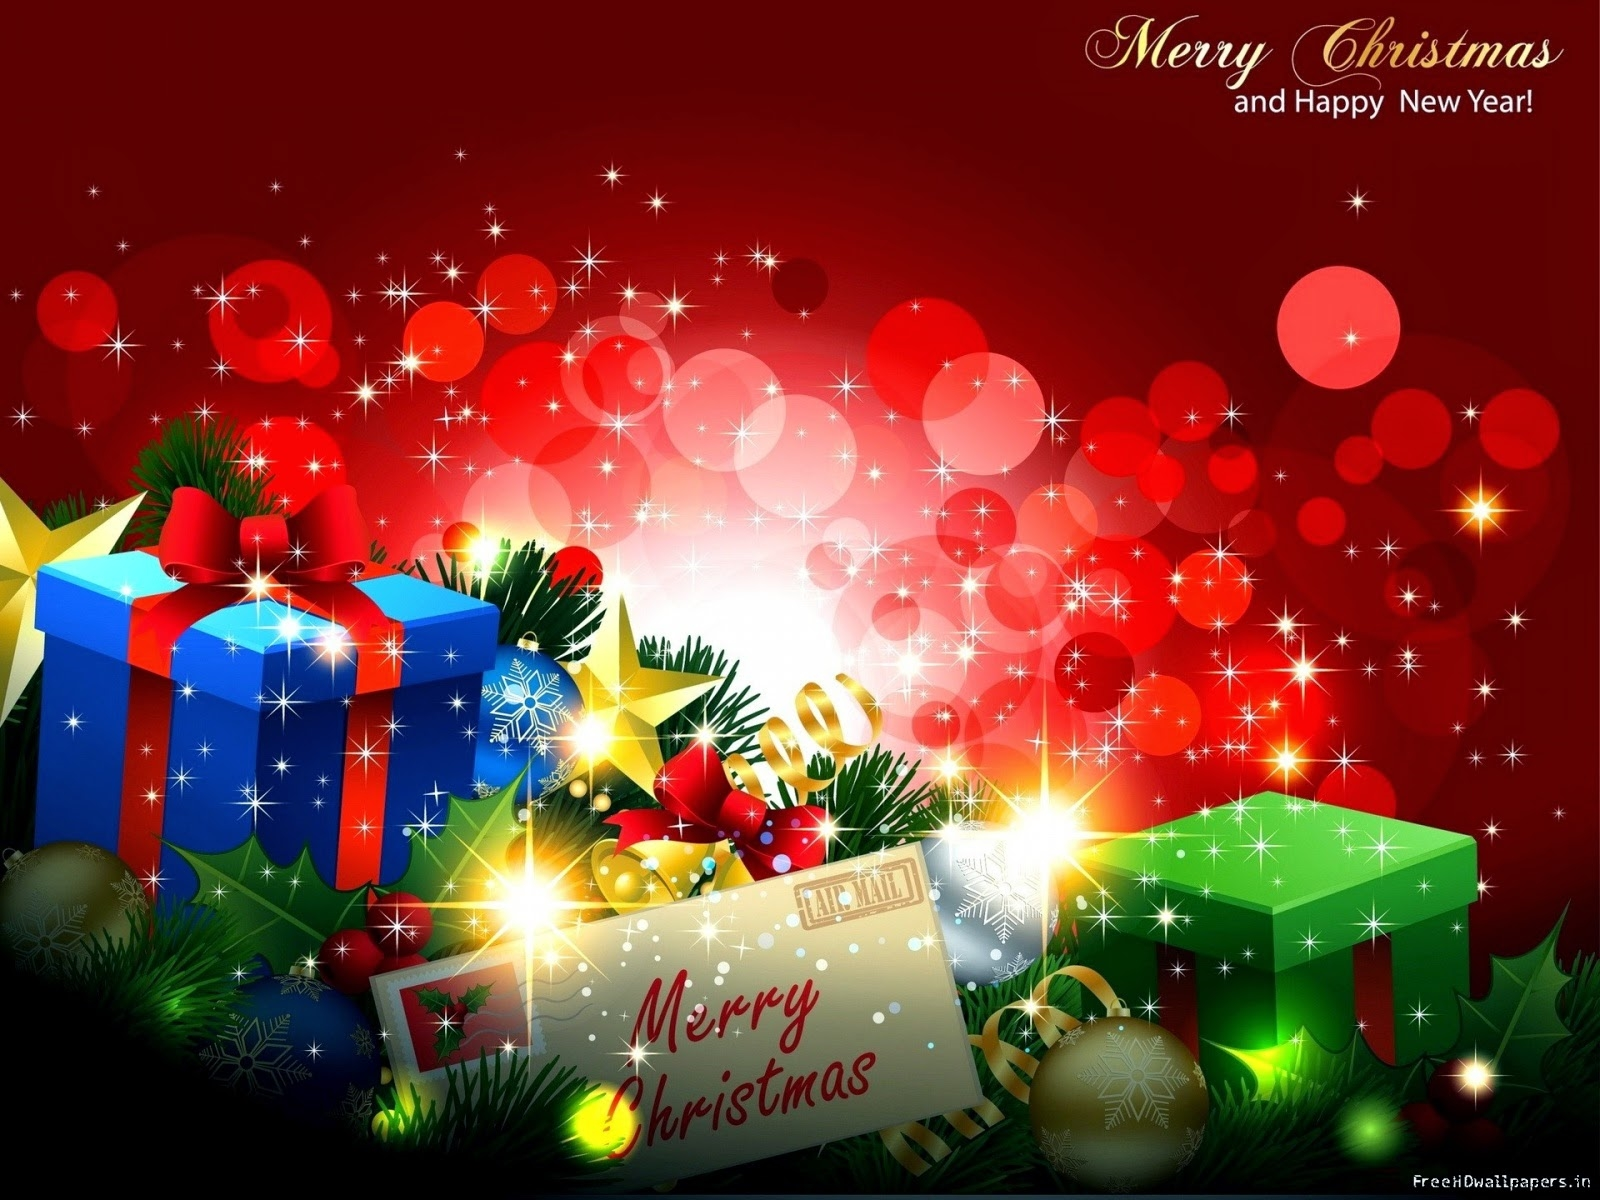 Merry christmas happy new year greetings m4hsunfo